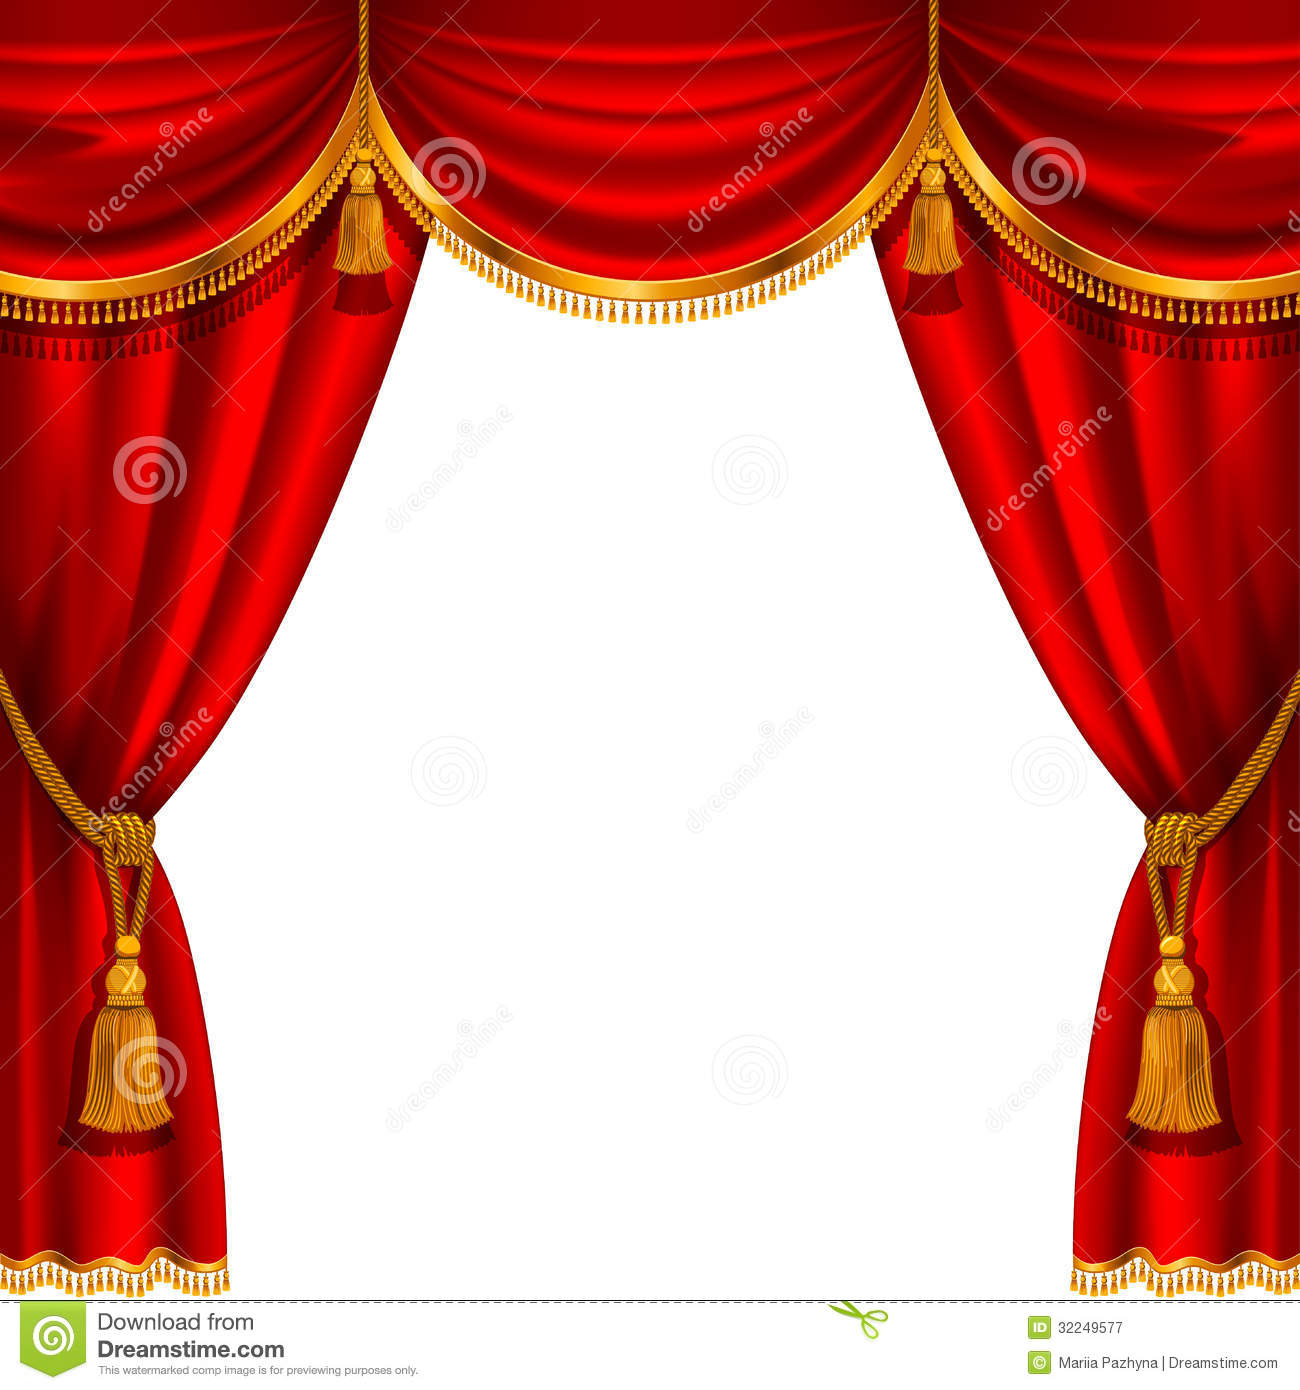 Red curtain designs red curtain